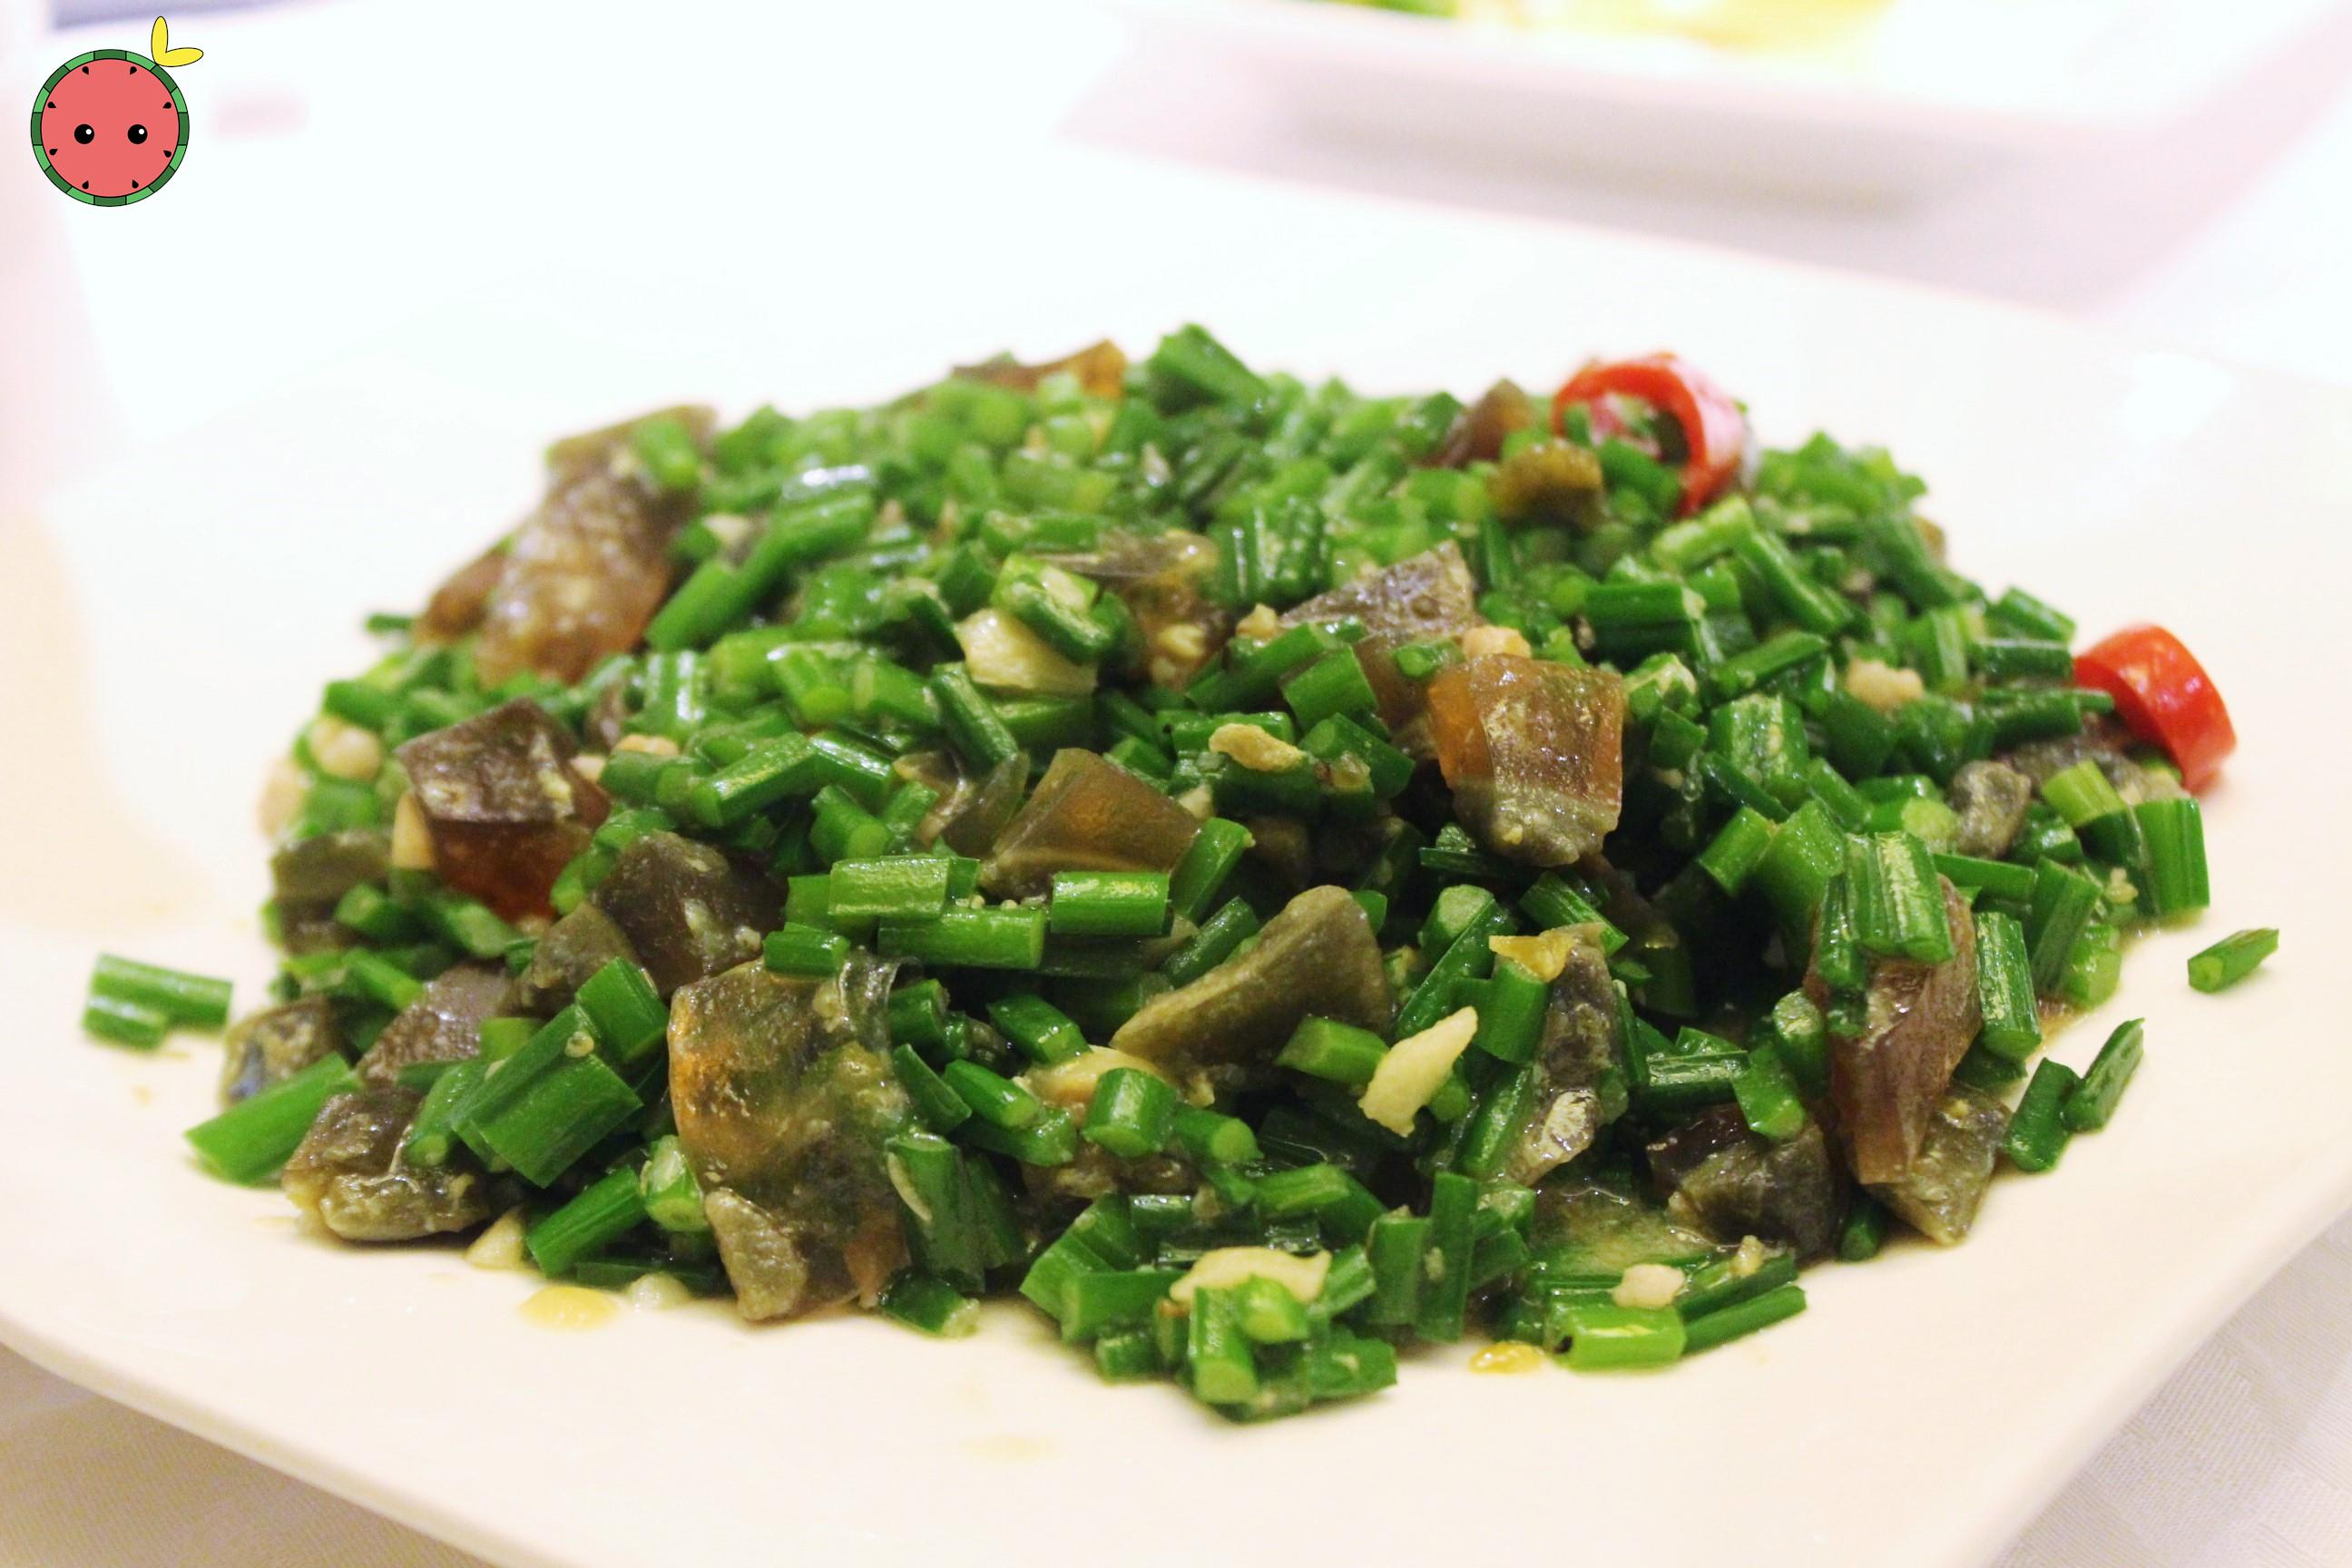 Sautéed chives with century eggs 韭菜松花炒